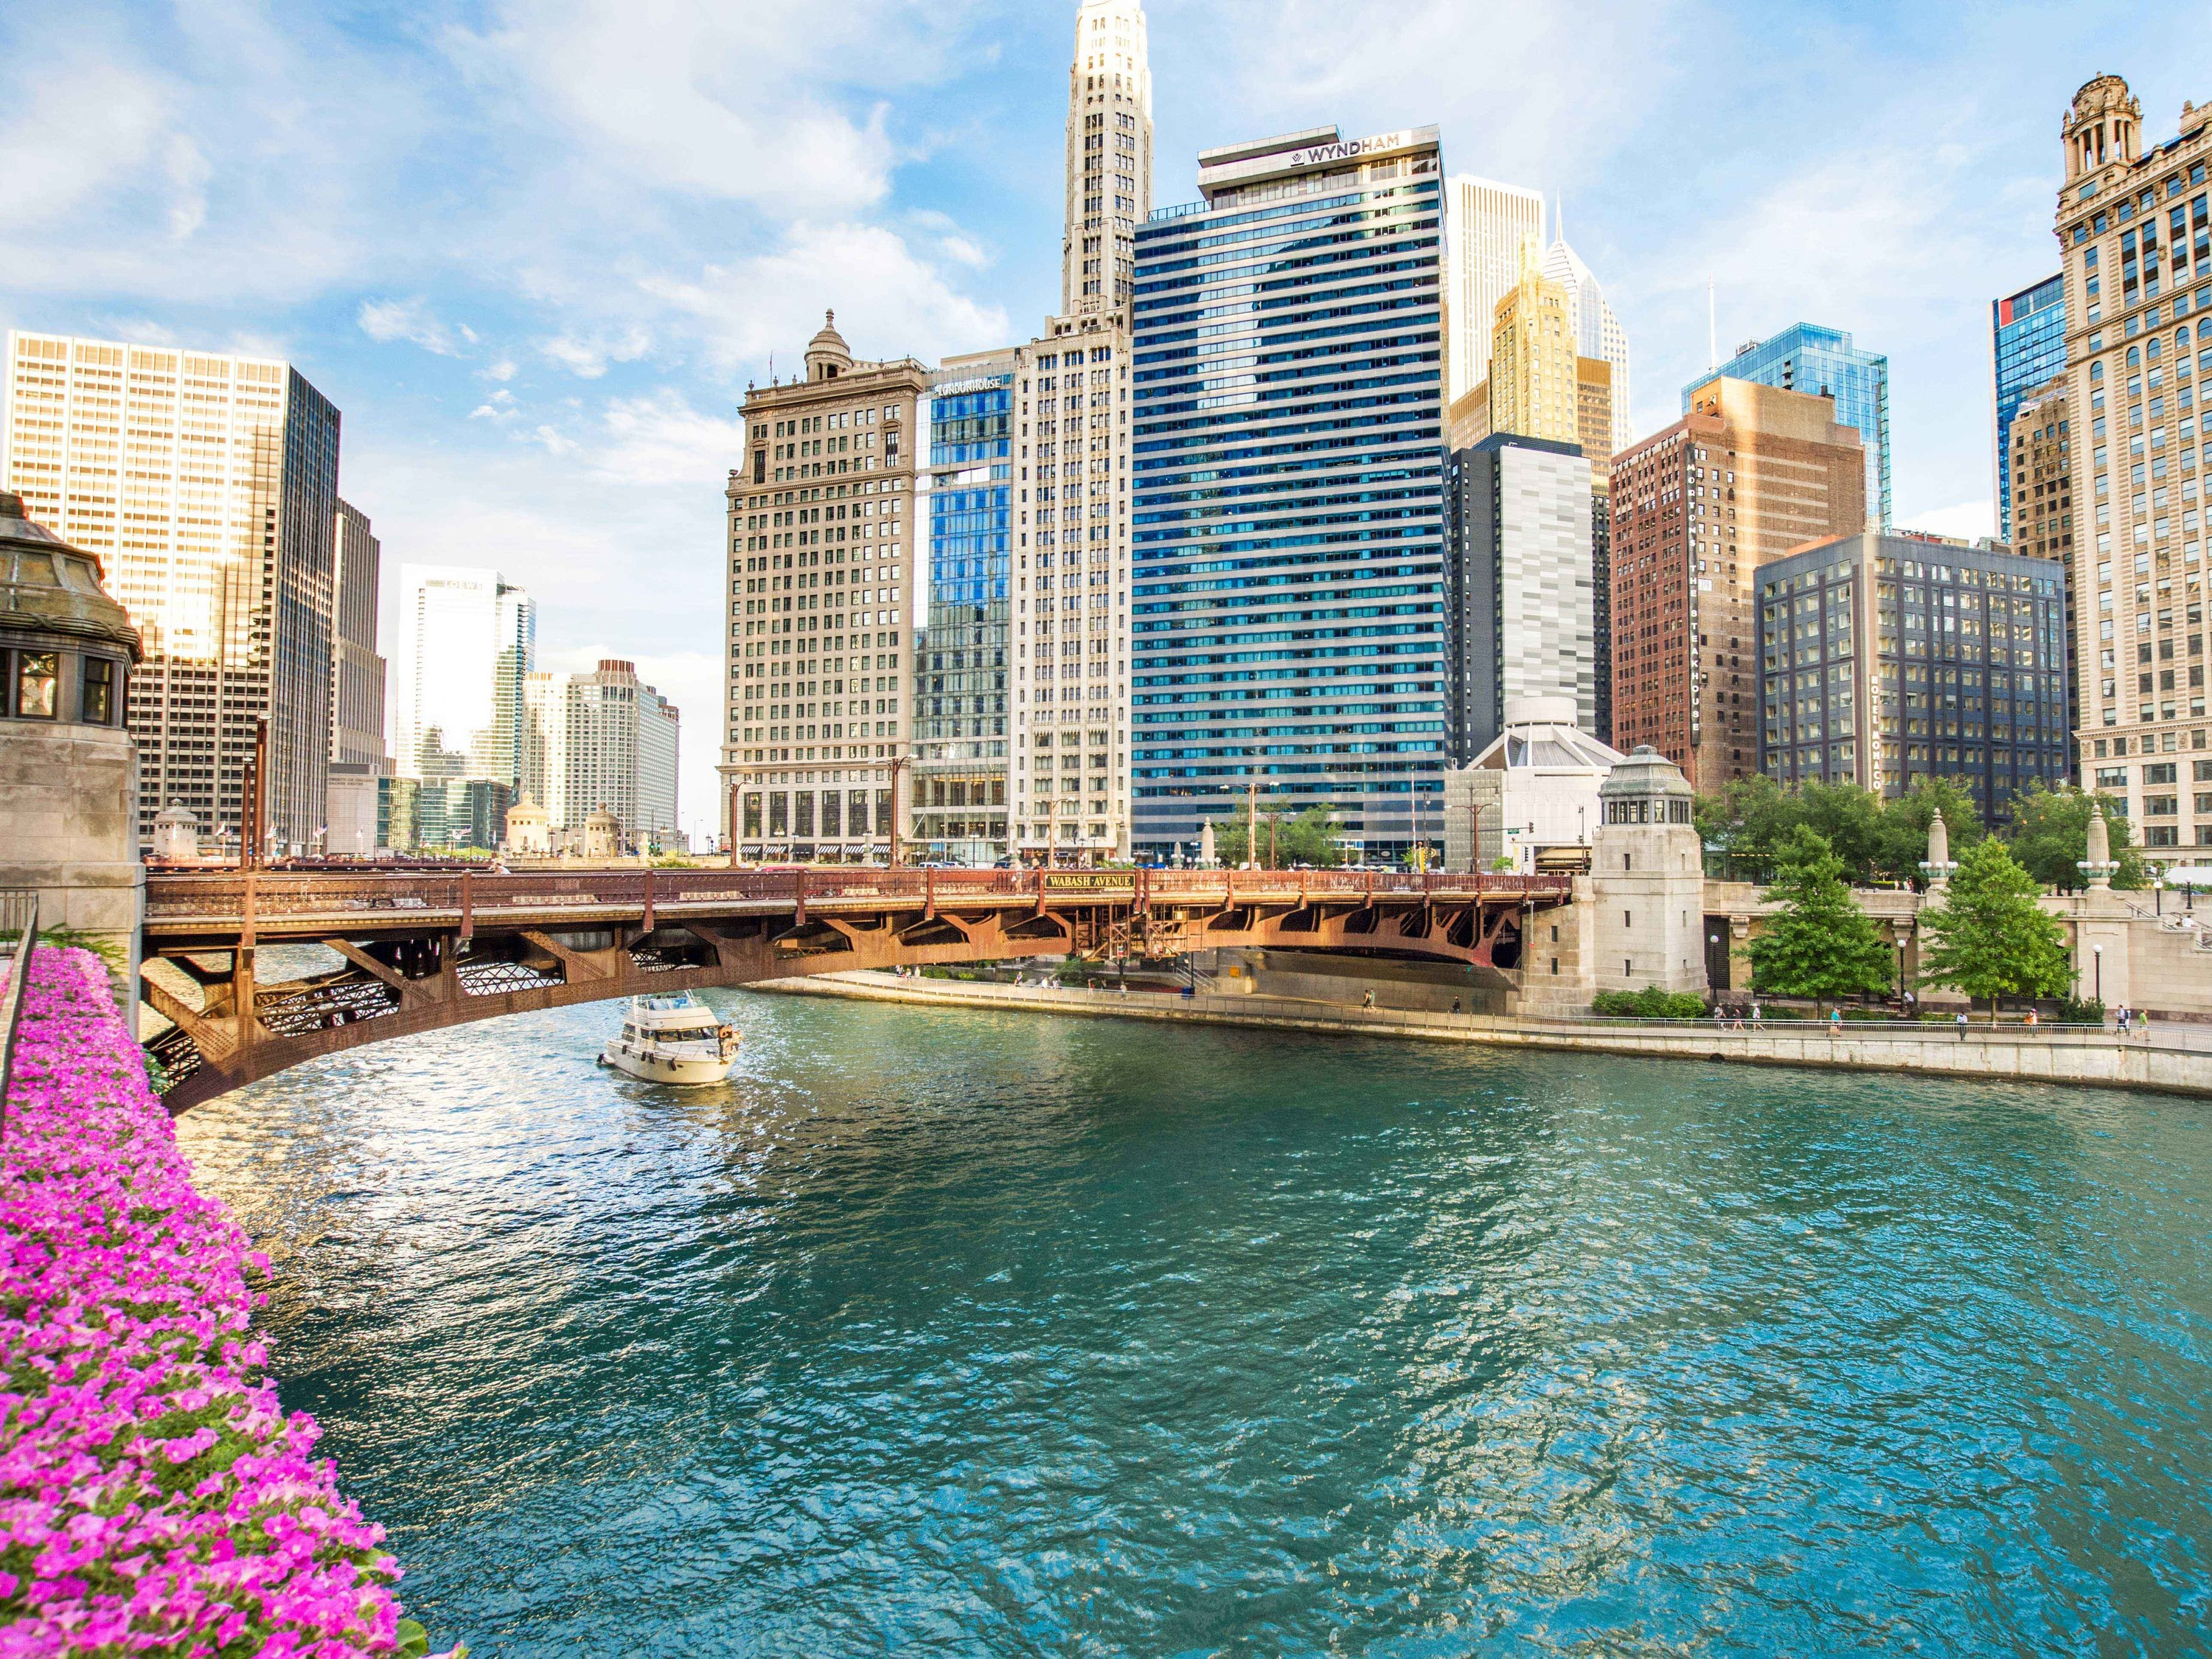 Chicago was just voted the 2nd most beautiful city in the world